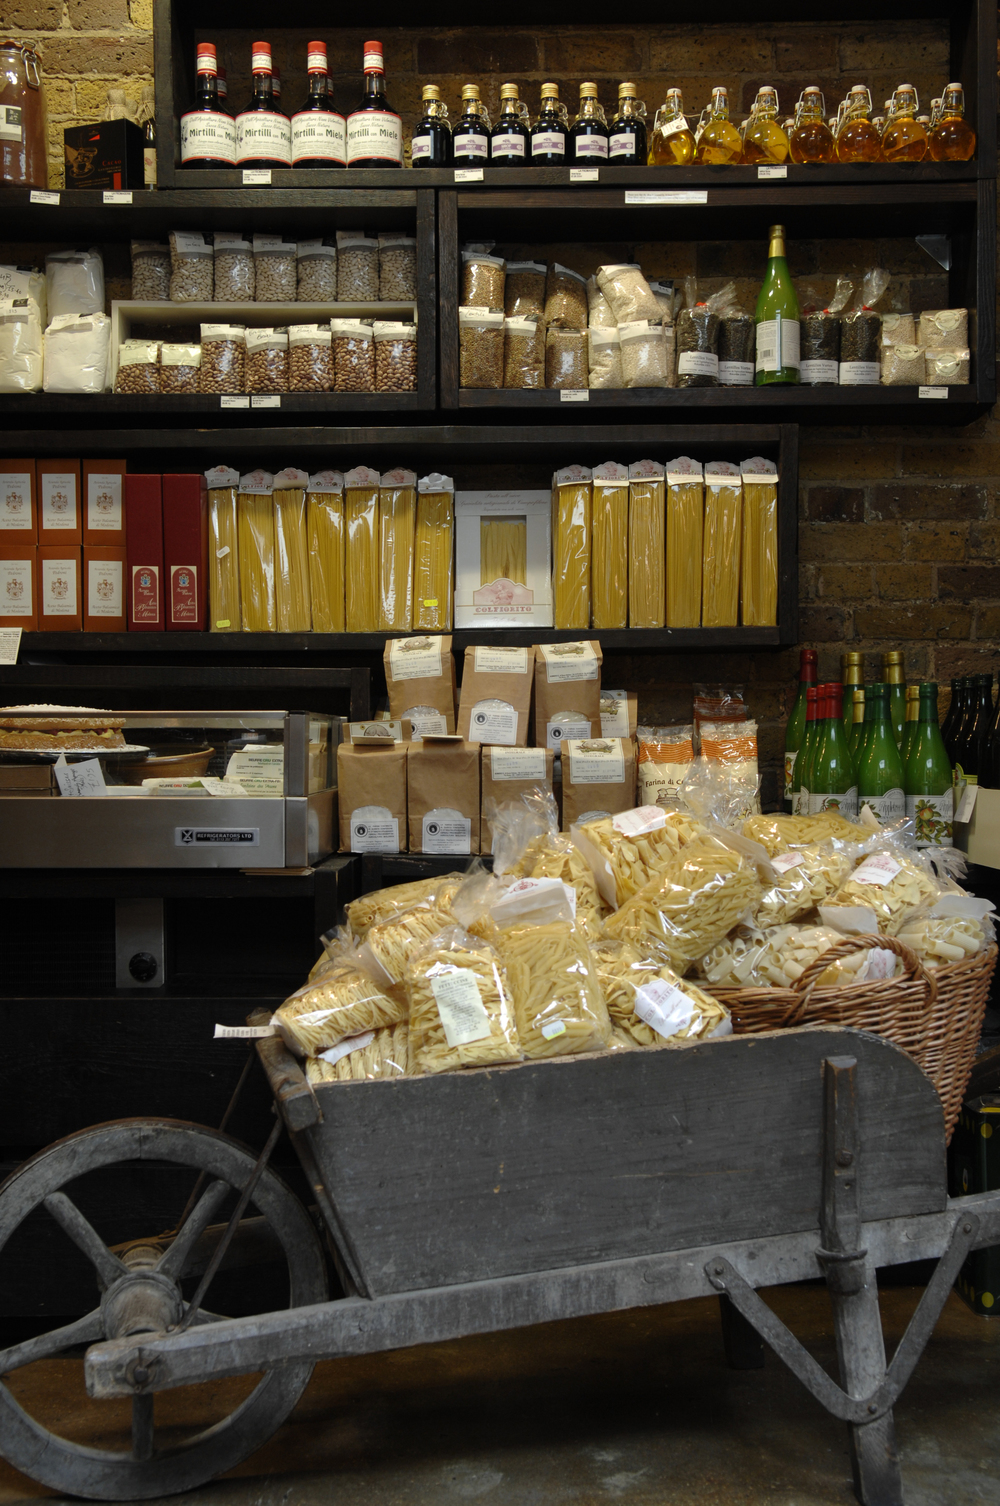 la-fromagerie-shop-shelves.jpg